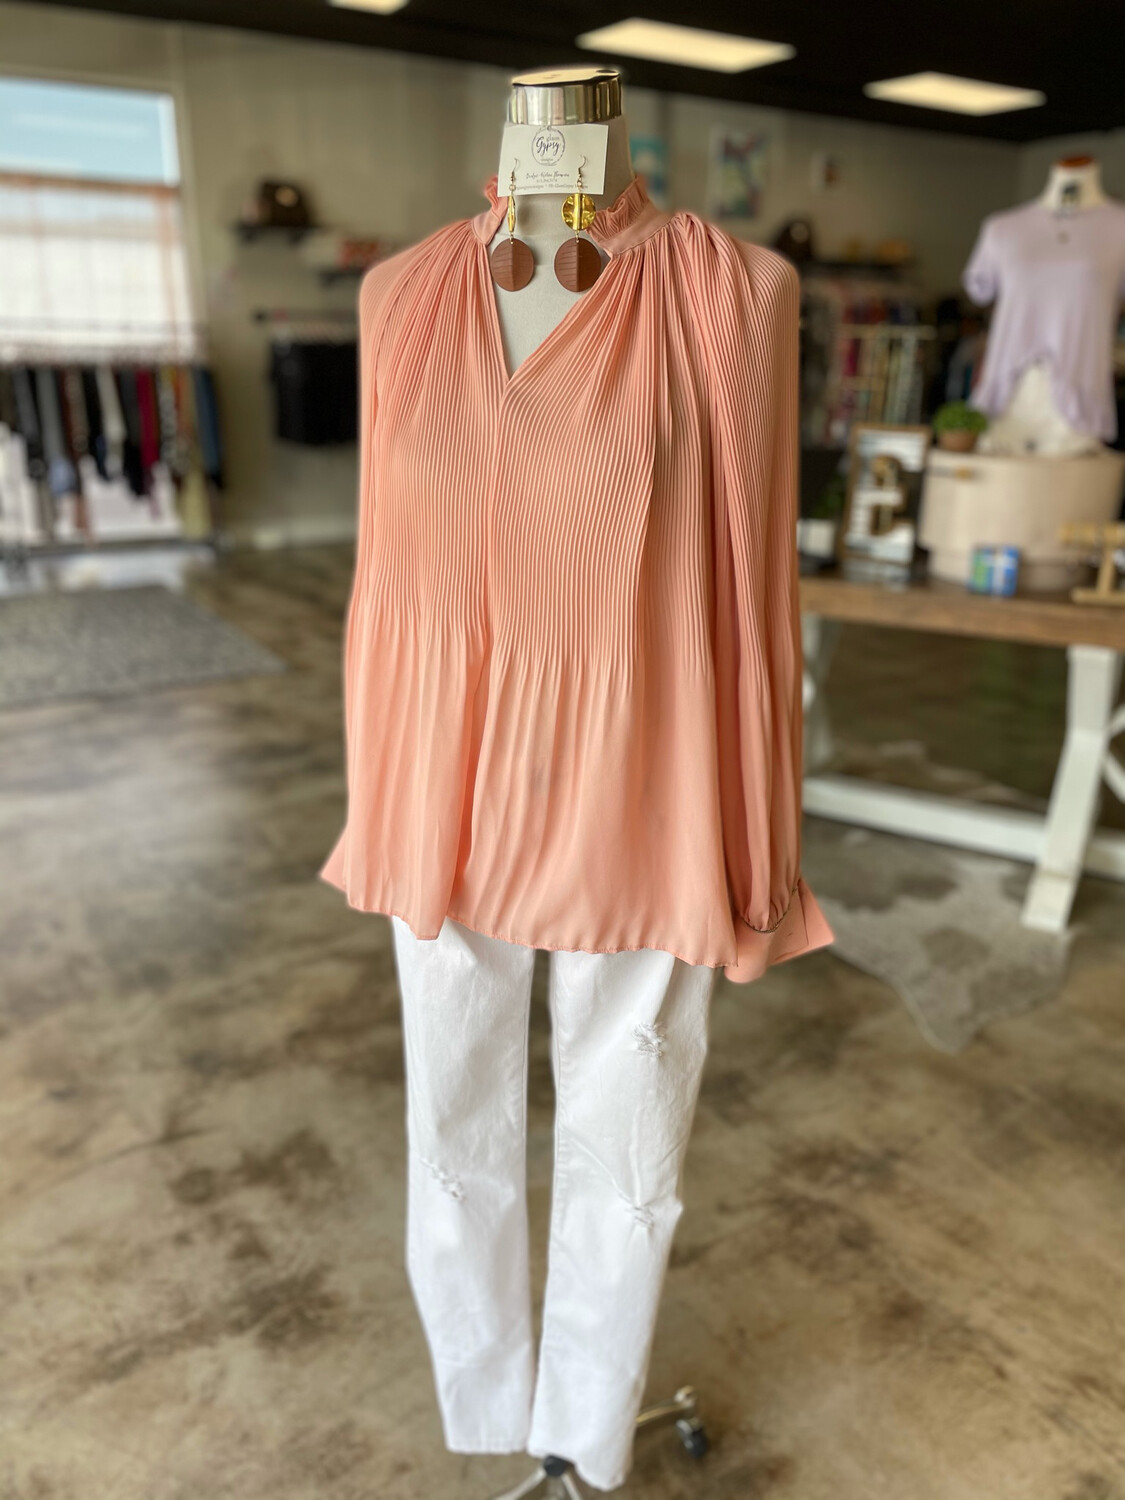 The Limited Collection Peach Top - L